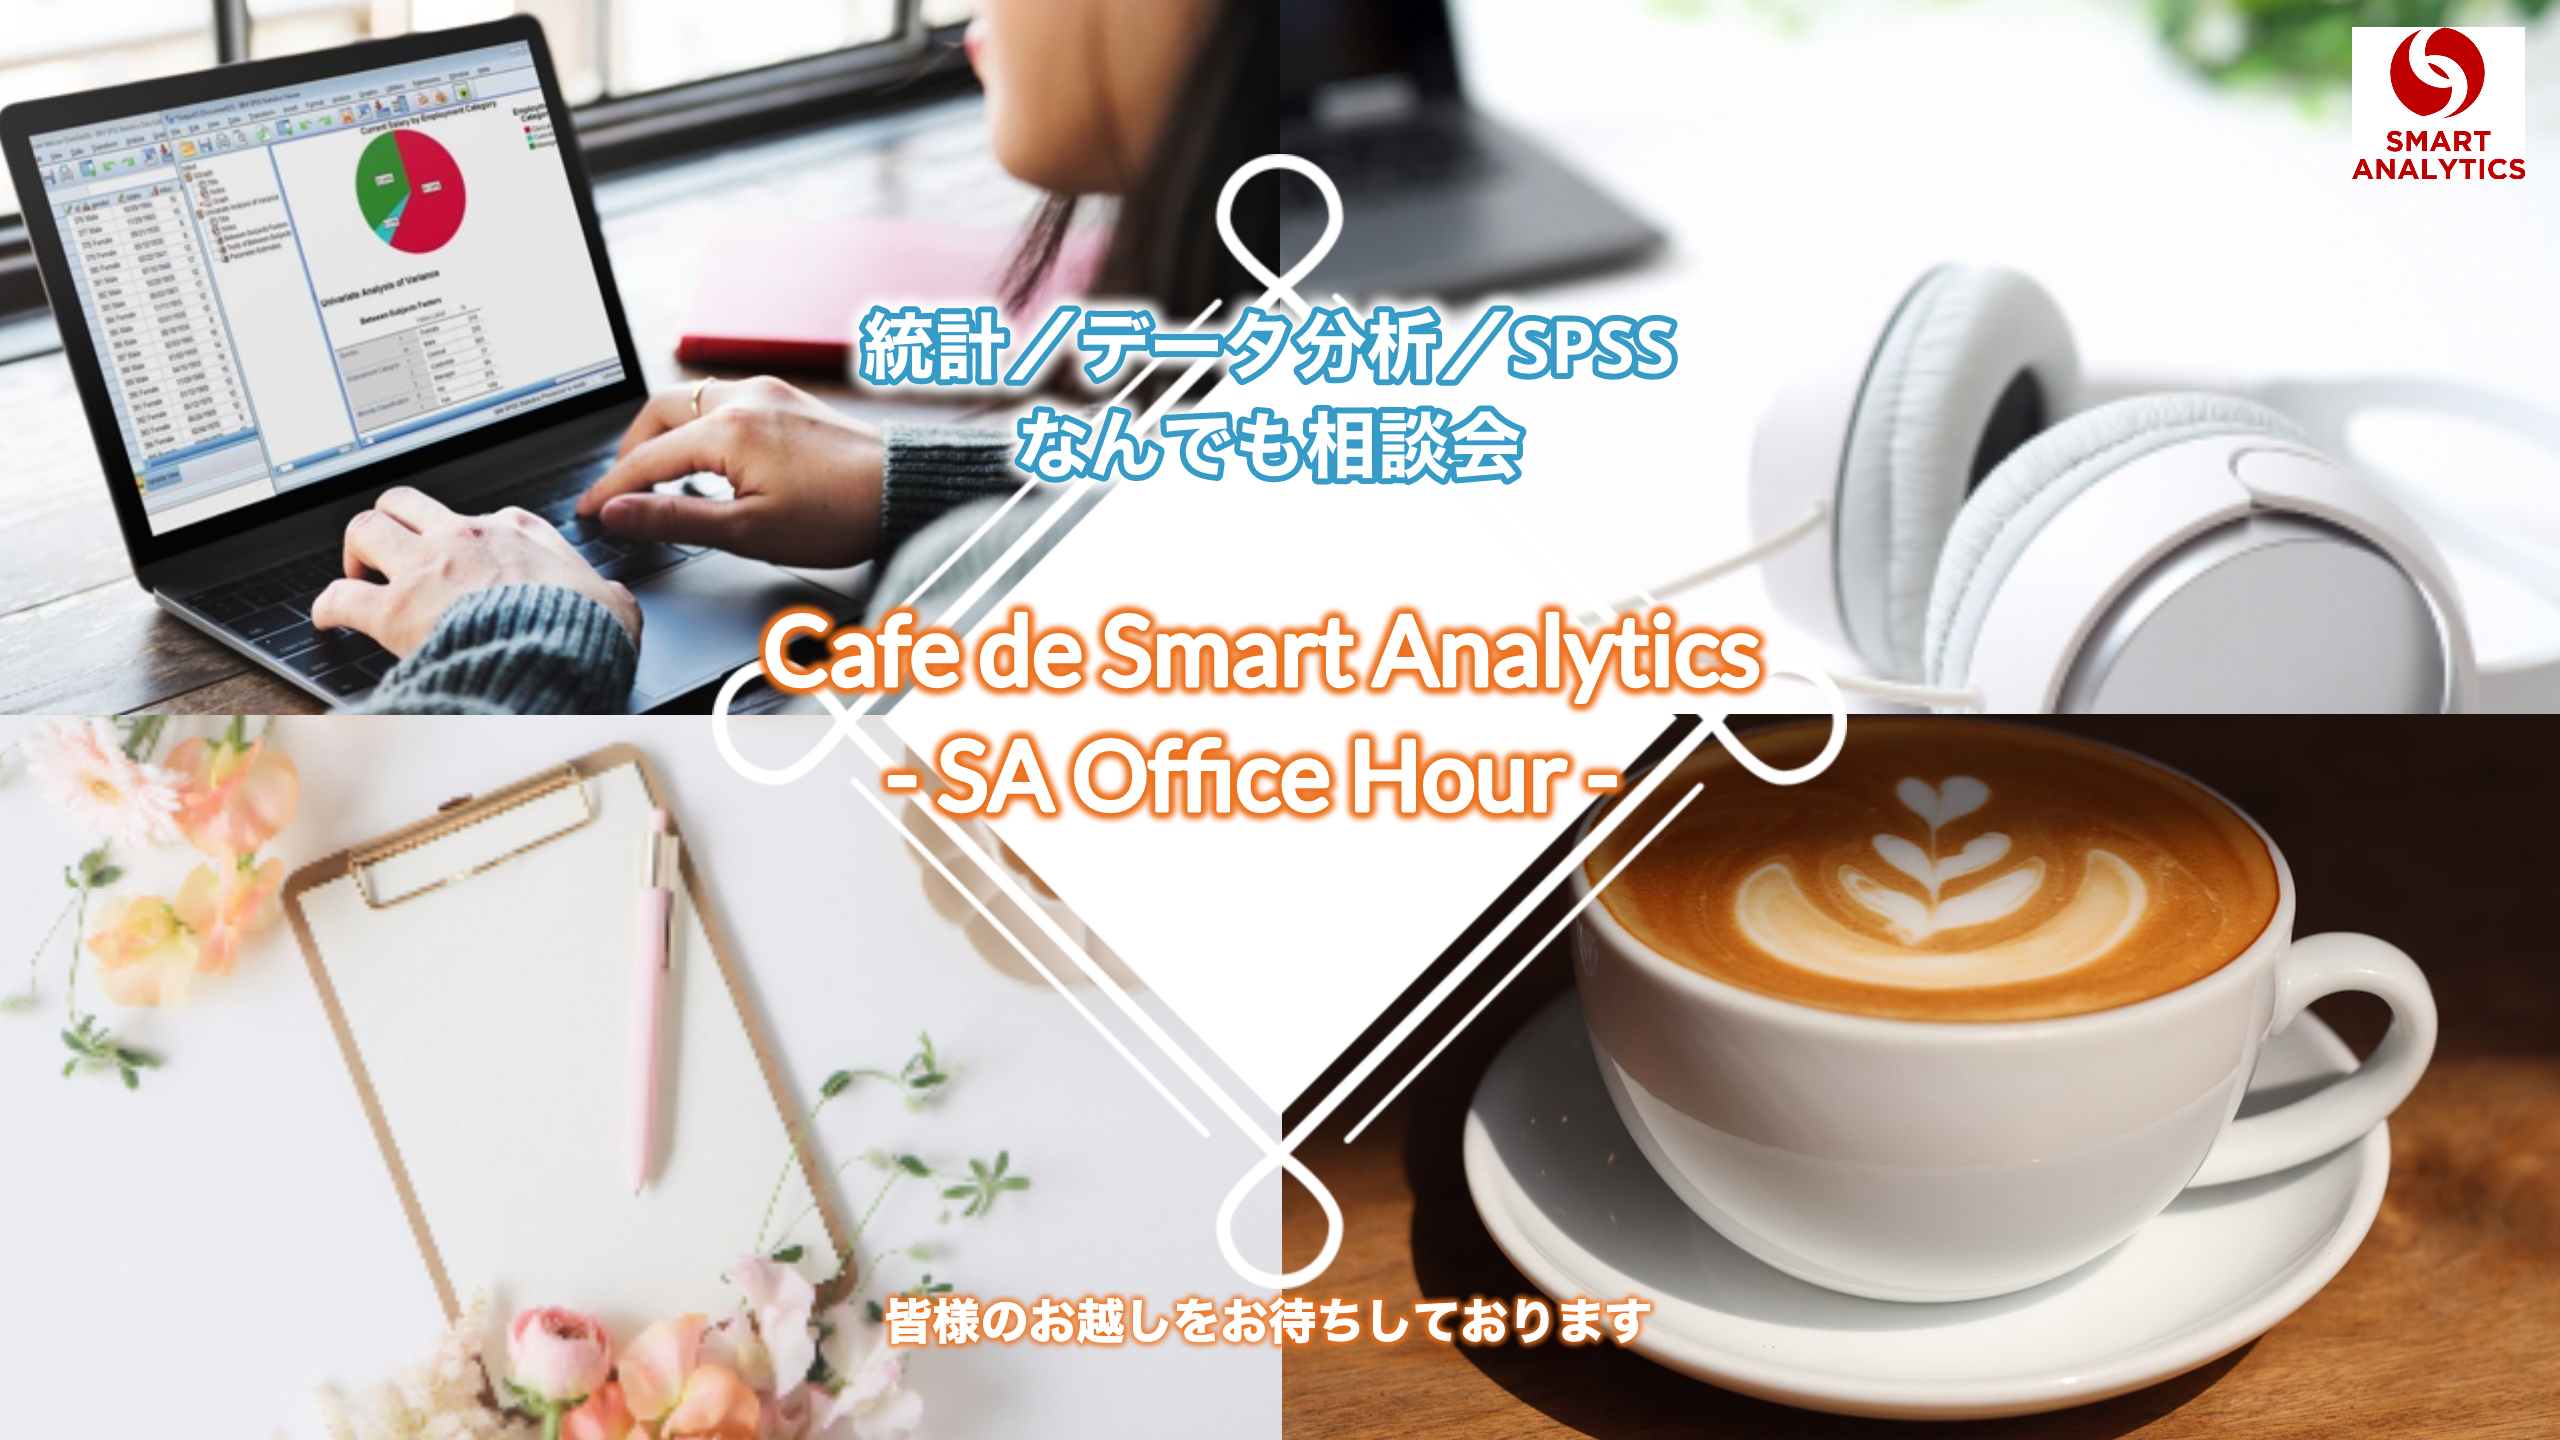 Cafe de Smart Analytics